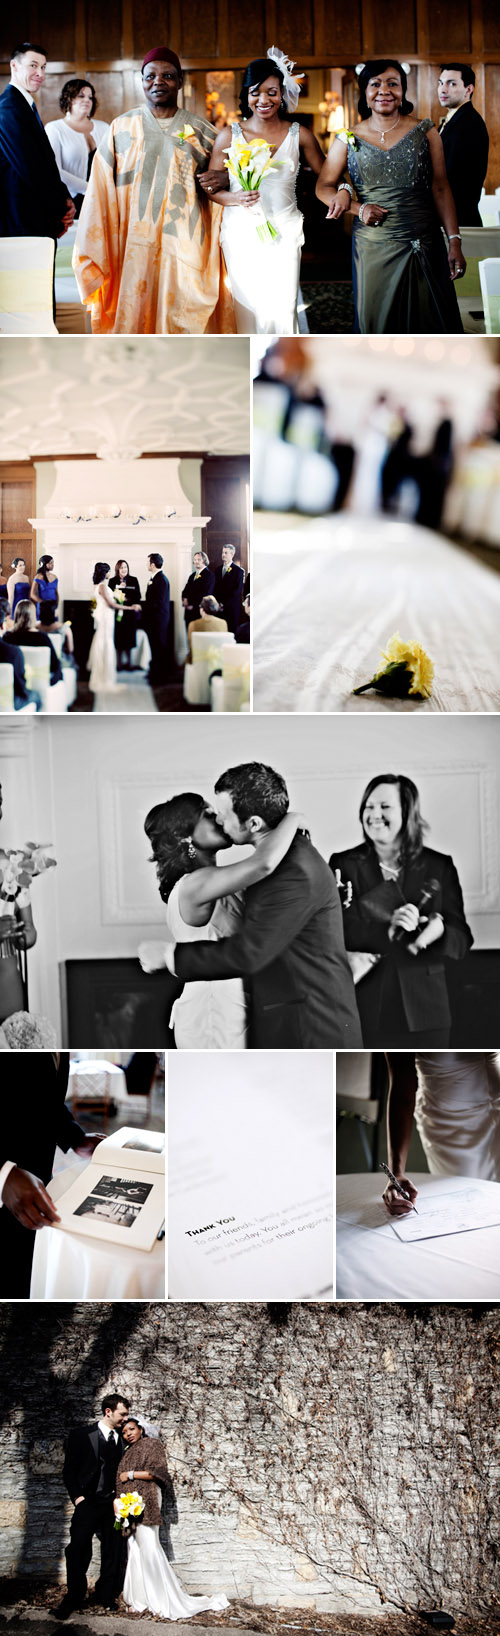 St Paul, Minnesota spring real wedding ceremony, yellow and blue color palette, images by Eliesa Johnson of Photogen